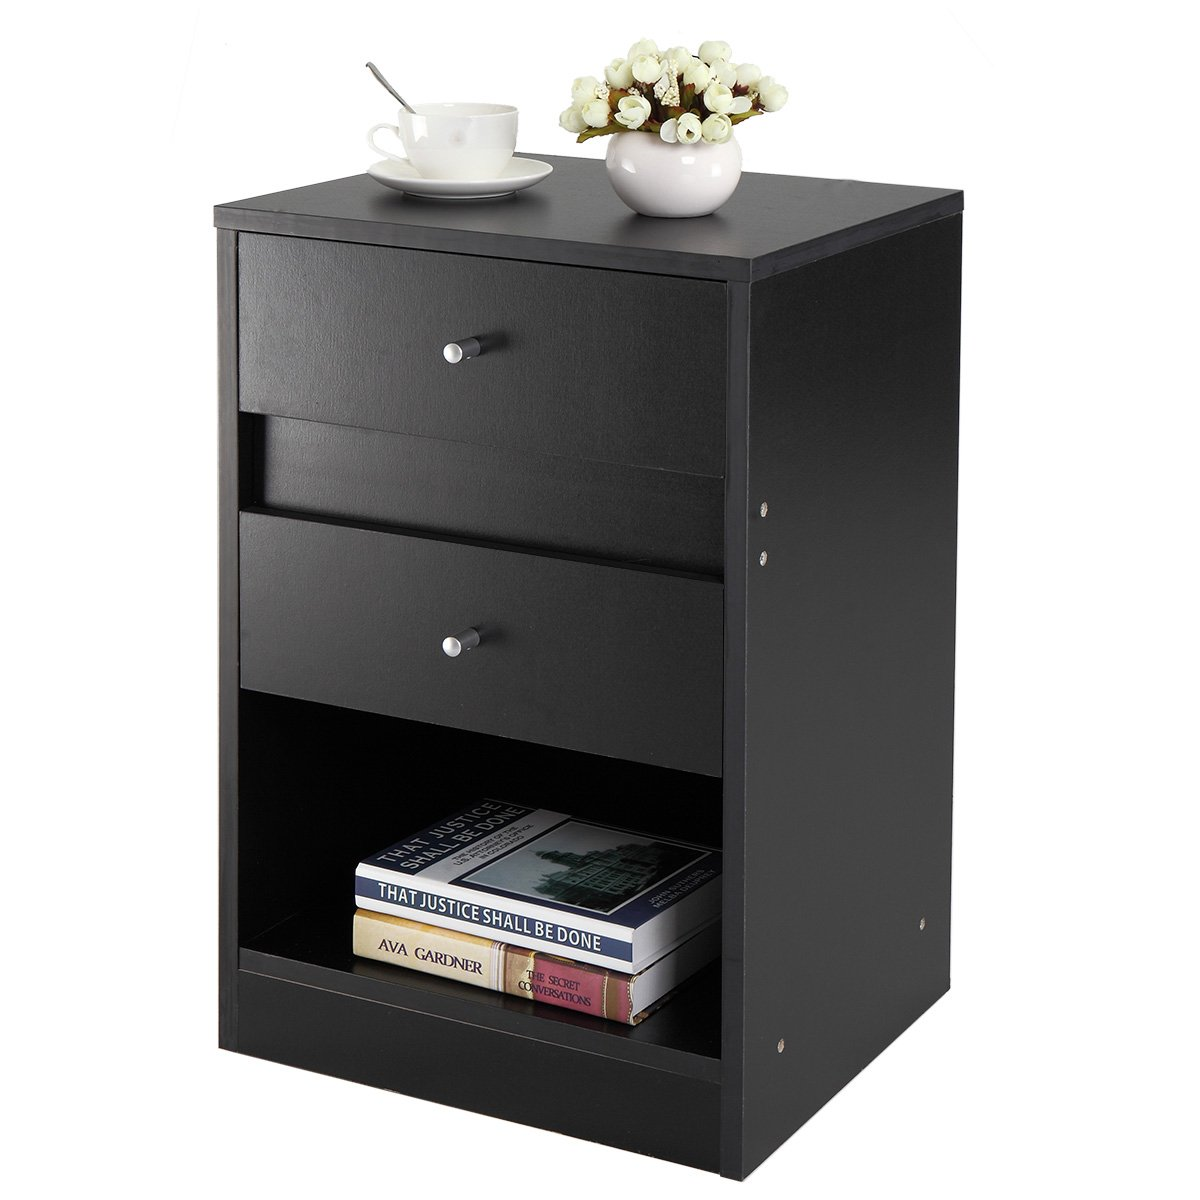 lazymoon nightstand end table bedroom furniture bedside winsome ava accent with drawer black finish cabinet shelf kitchen dining acrylic coffee ikea white garden sets carpet